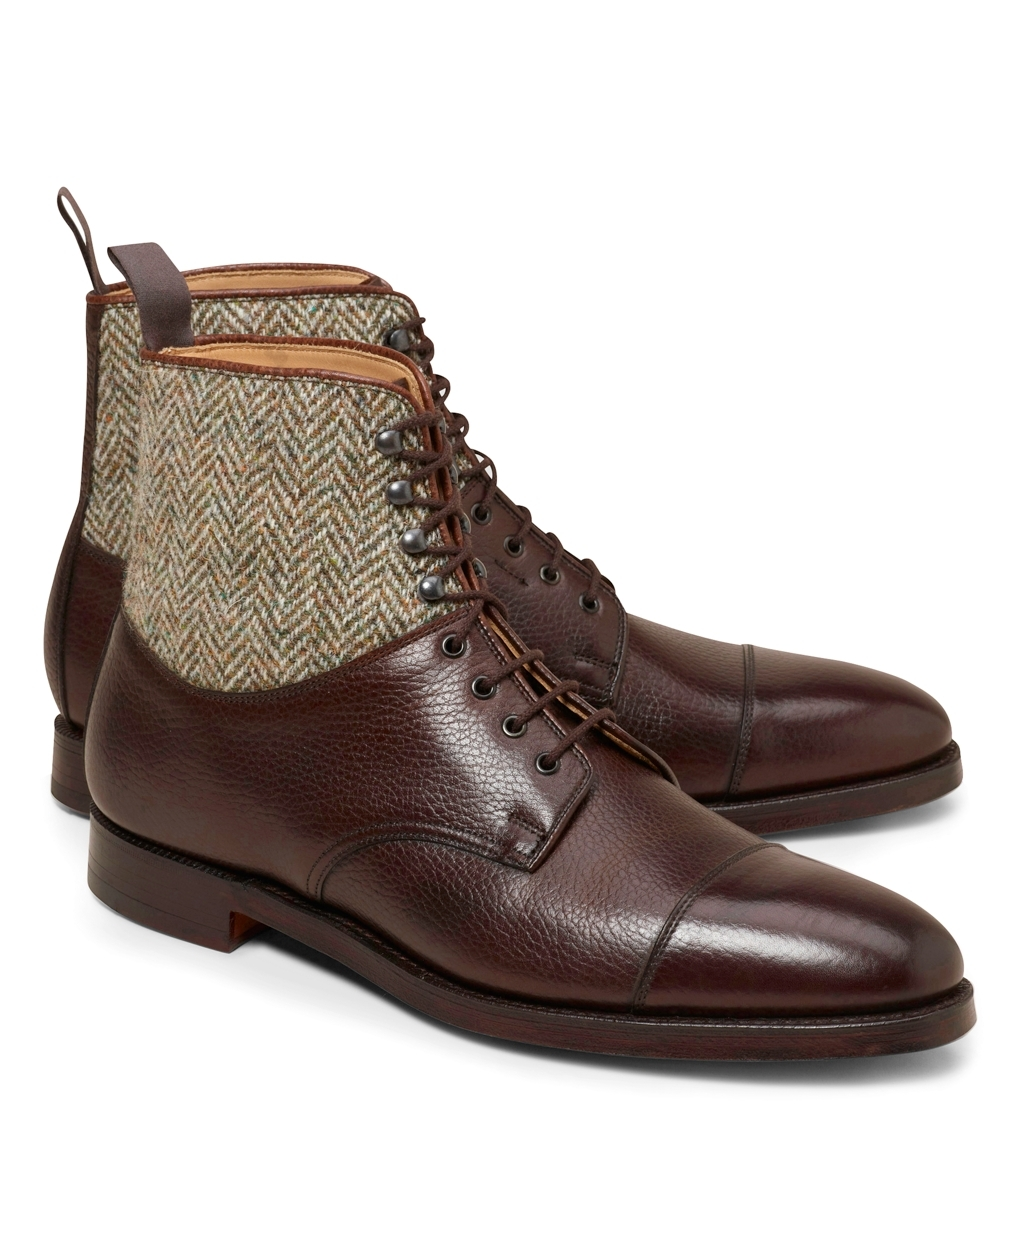 10a2844b9958 Handmade men brown leather boots, tweed fabric boot for men, formal dress  shoes- Boots